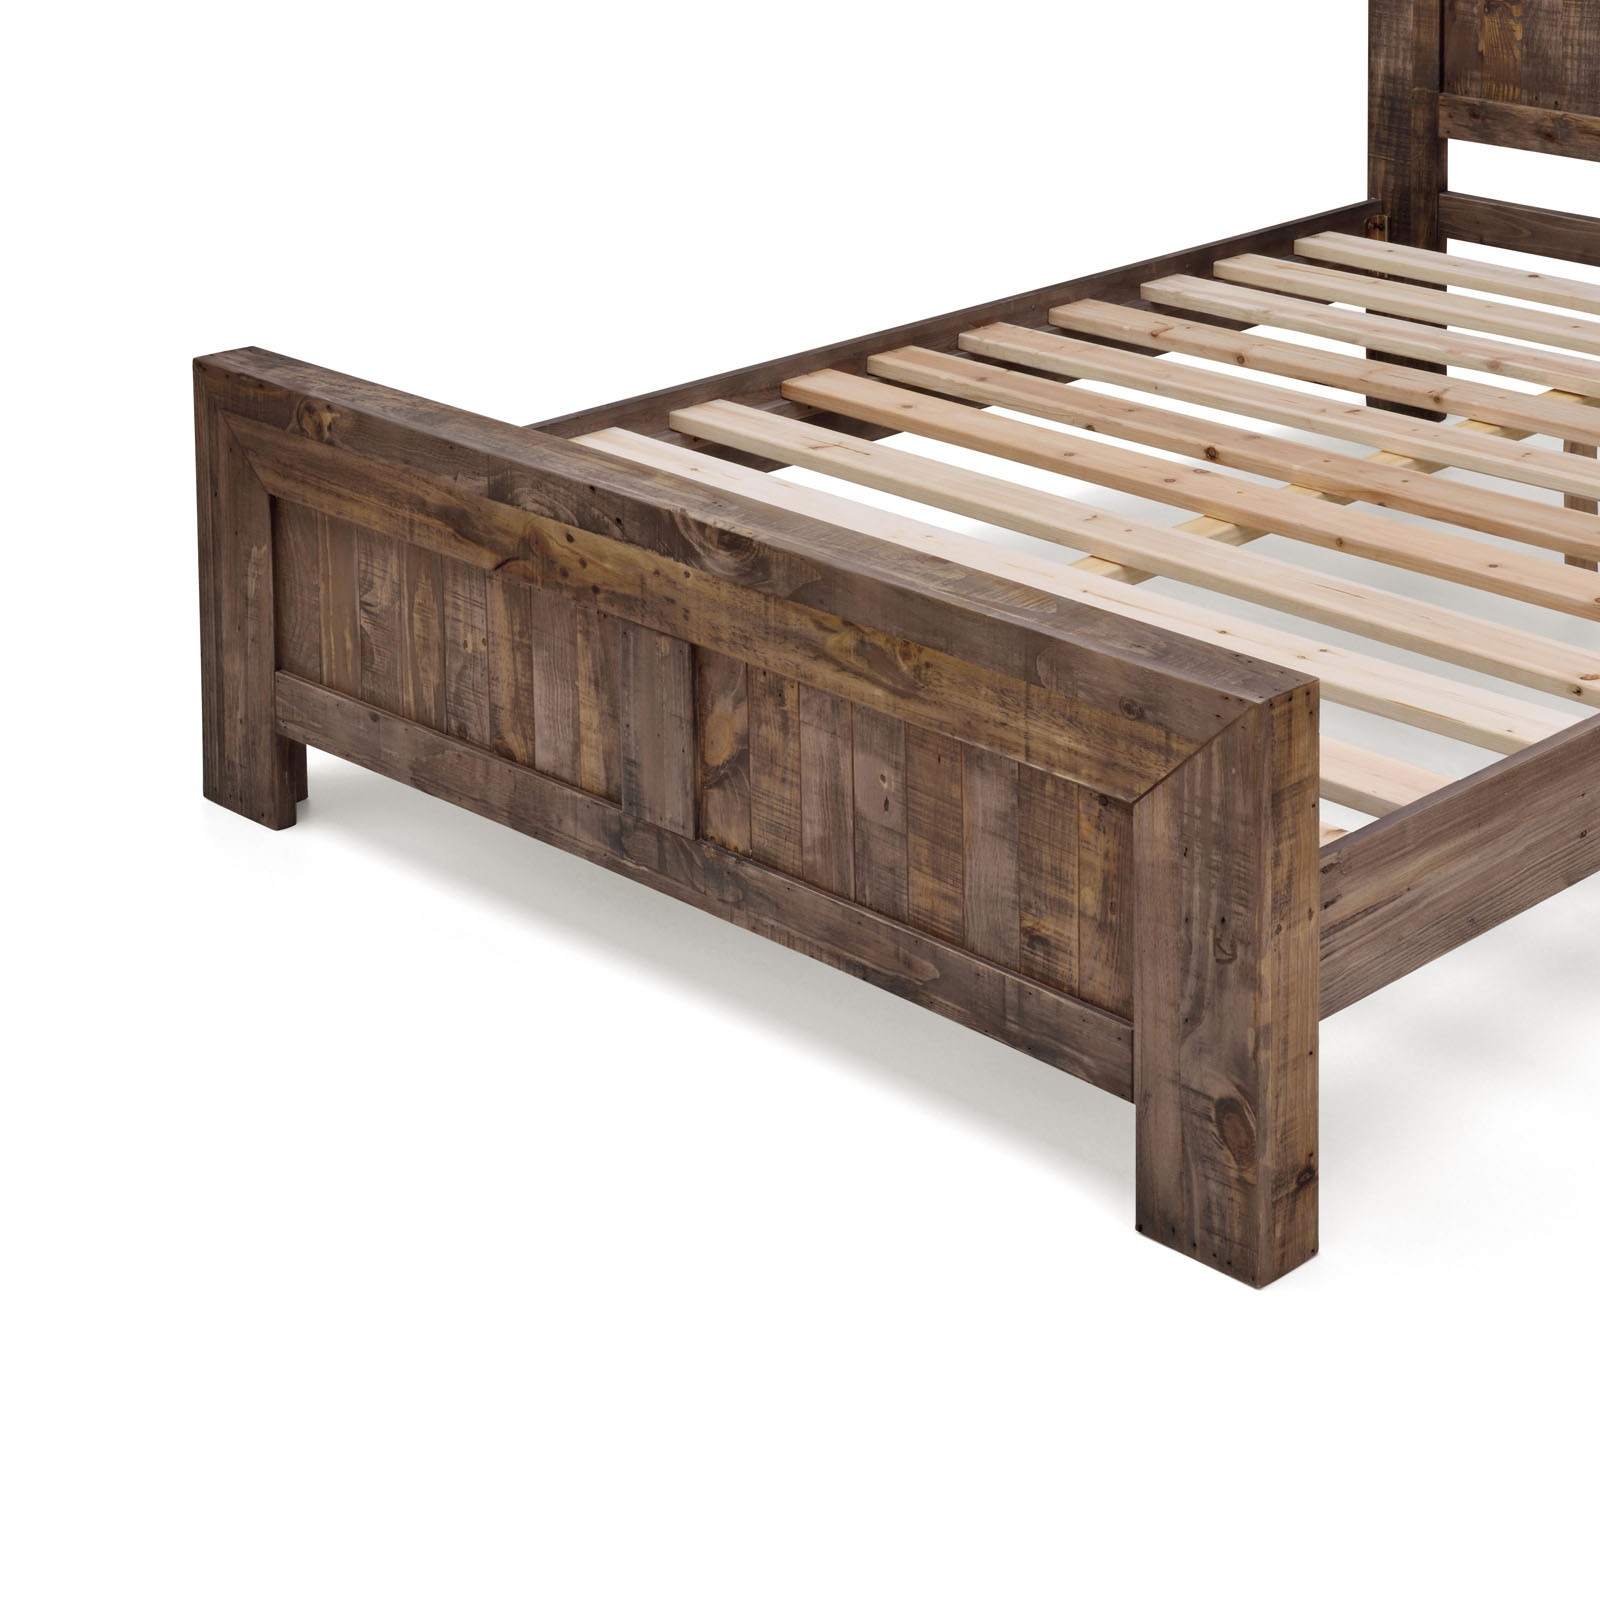 huge discount add2c 90860 Boston Recycled Solid Pine Rustic Timber King Size Bed Frame